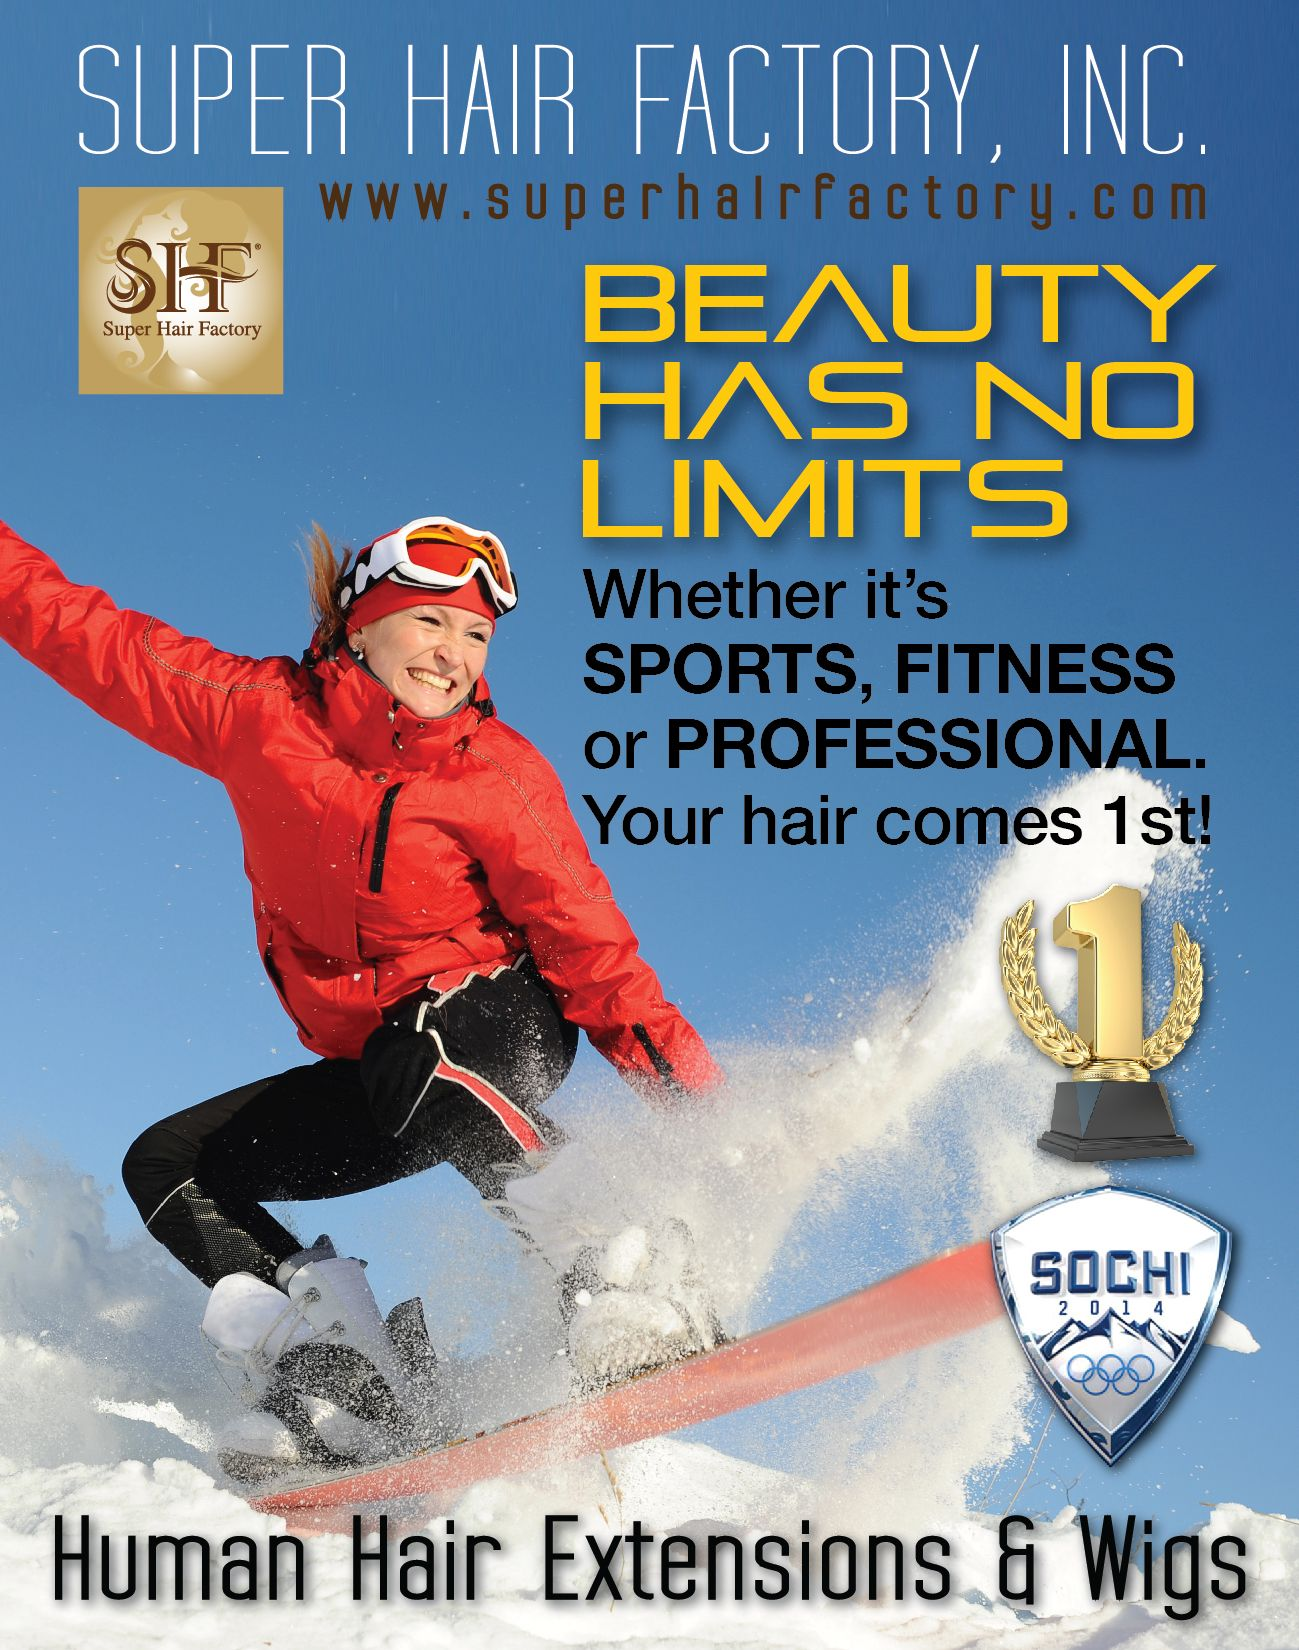 Super Hair Factory Inc All The Best To Our Athletes This Year